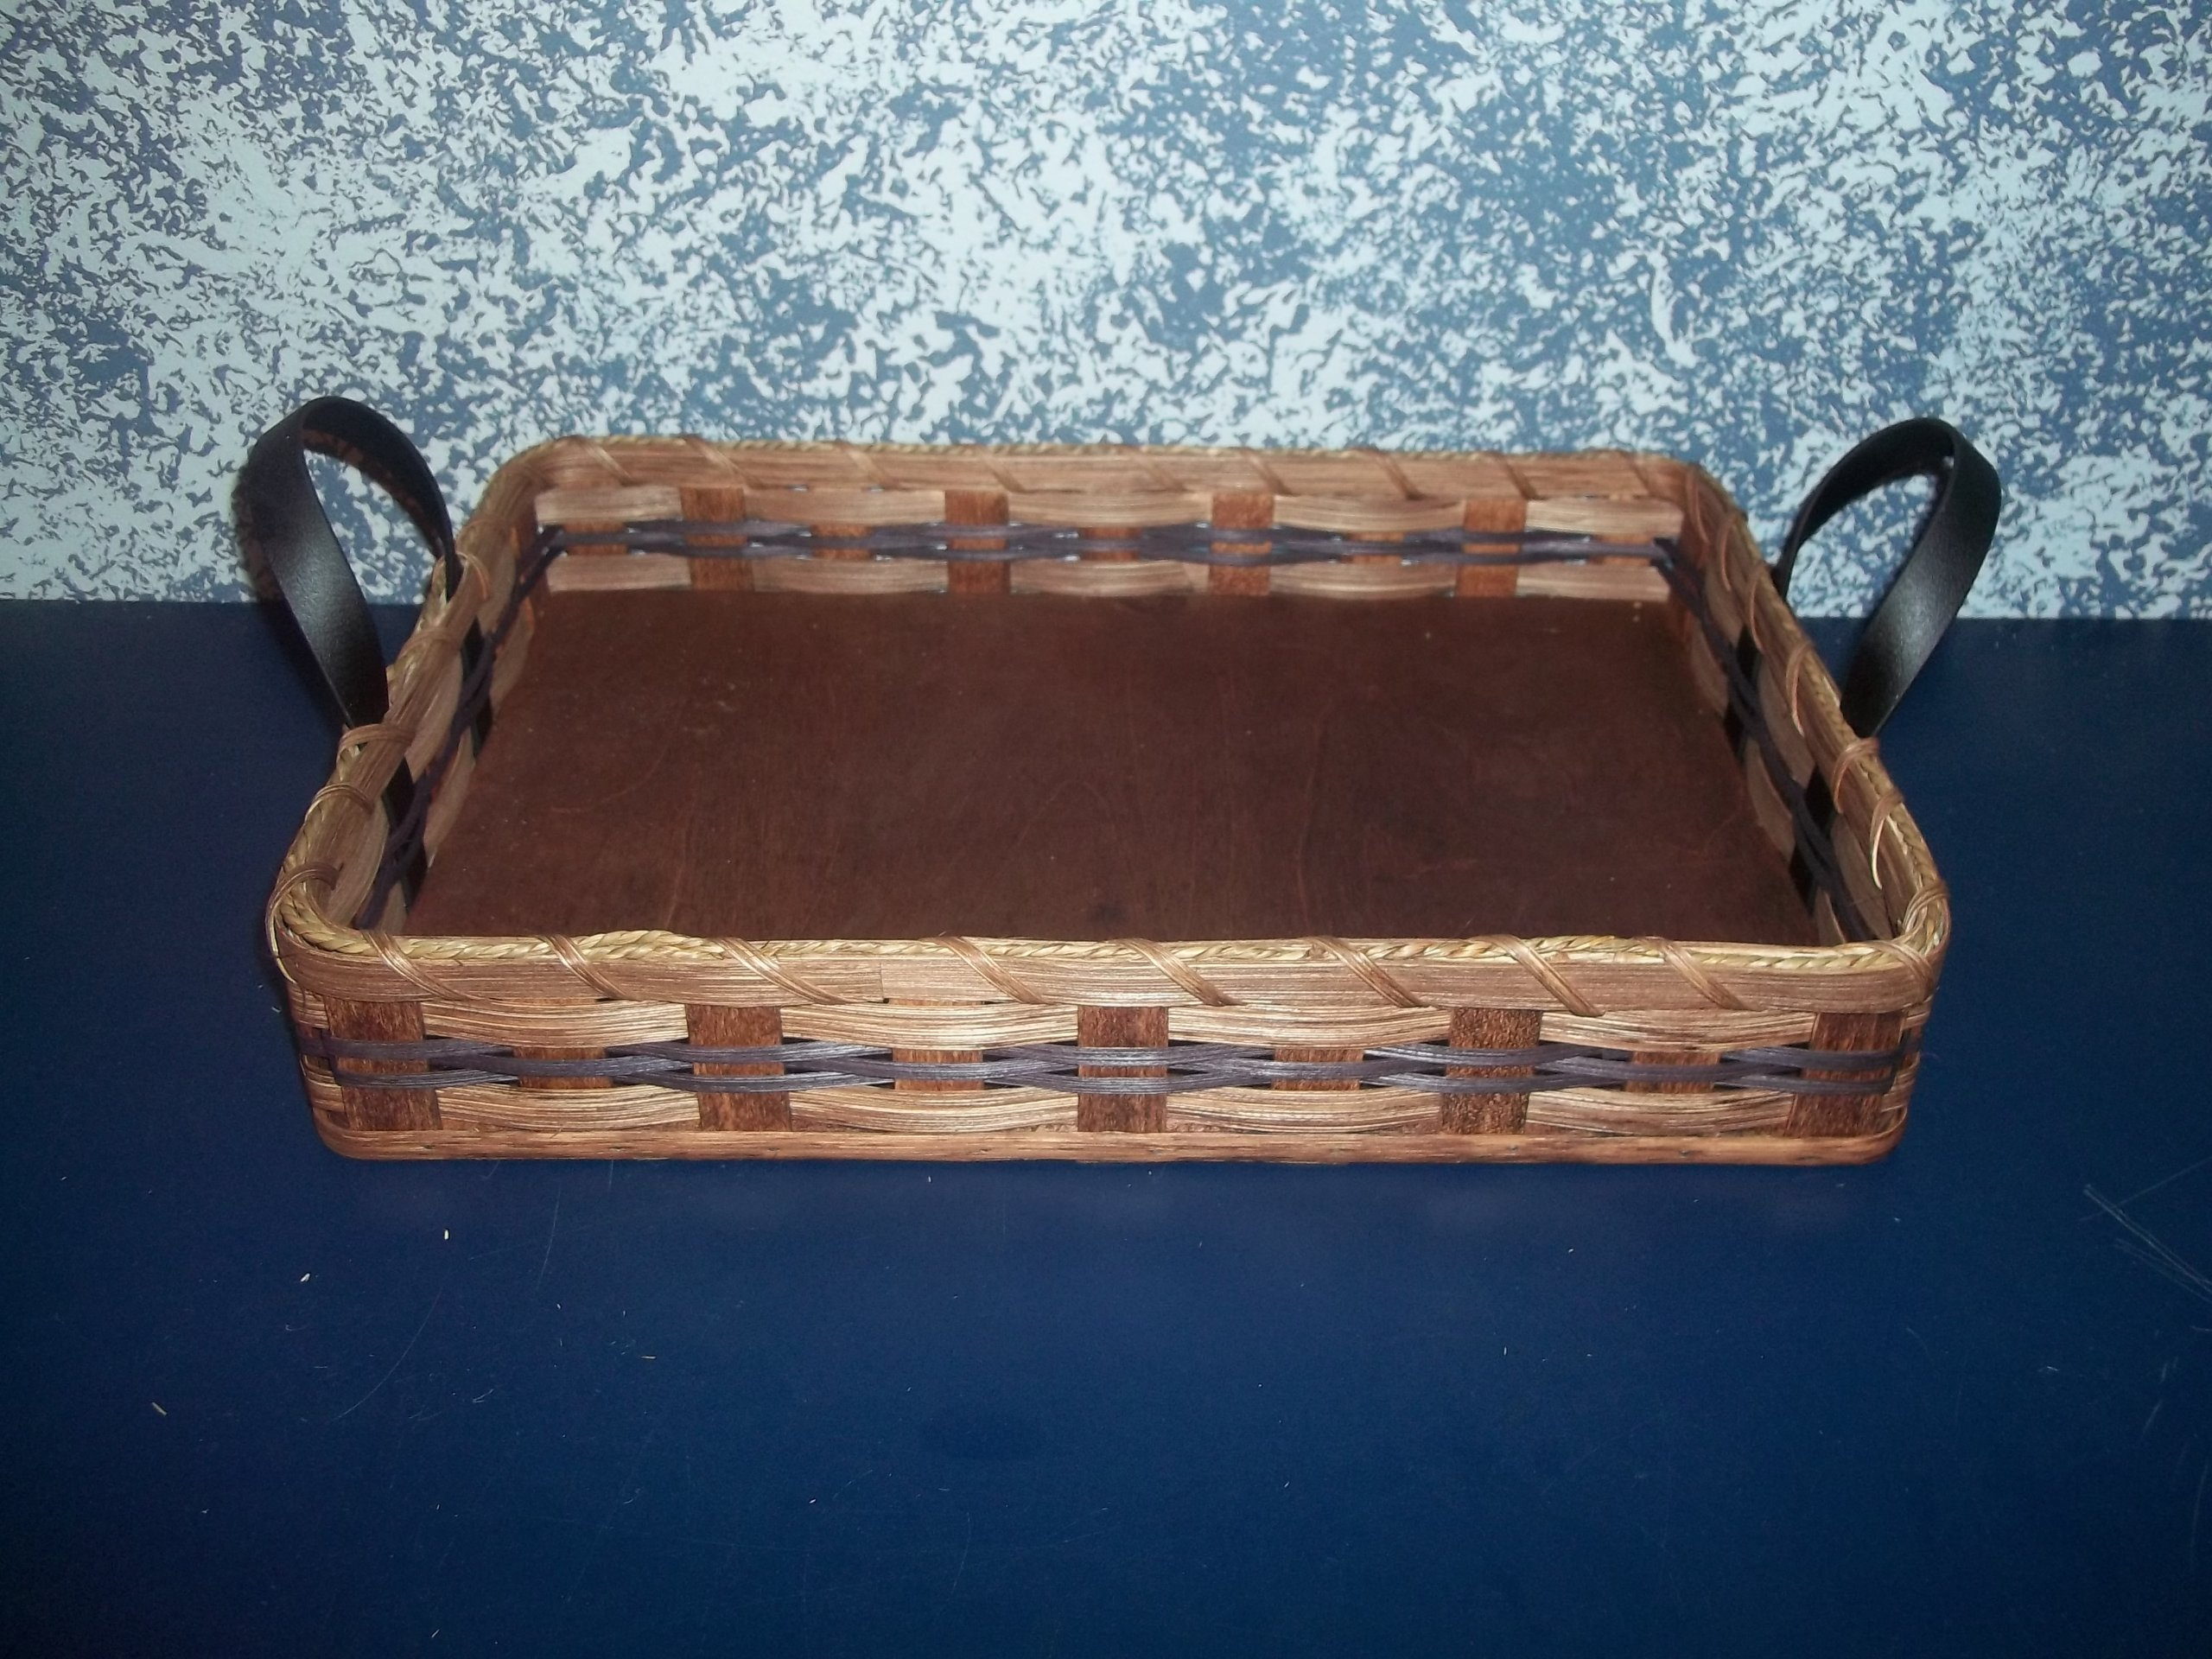 Amish Handmade Country Collectible Large Hot Dish Carrier Basket. Perfect for Carrying Your Hot Dishes and Casseroles. This Hot Dish Carrier Is Large Enough to Accomodate the Larger Dishes. This Is a Unique Gift for Any Country Home and Garden Decor. Meas